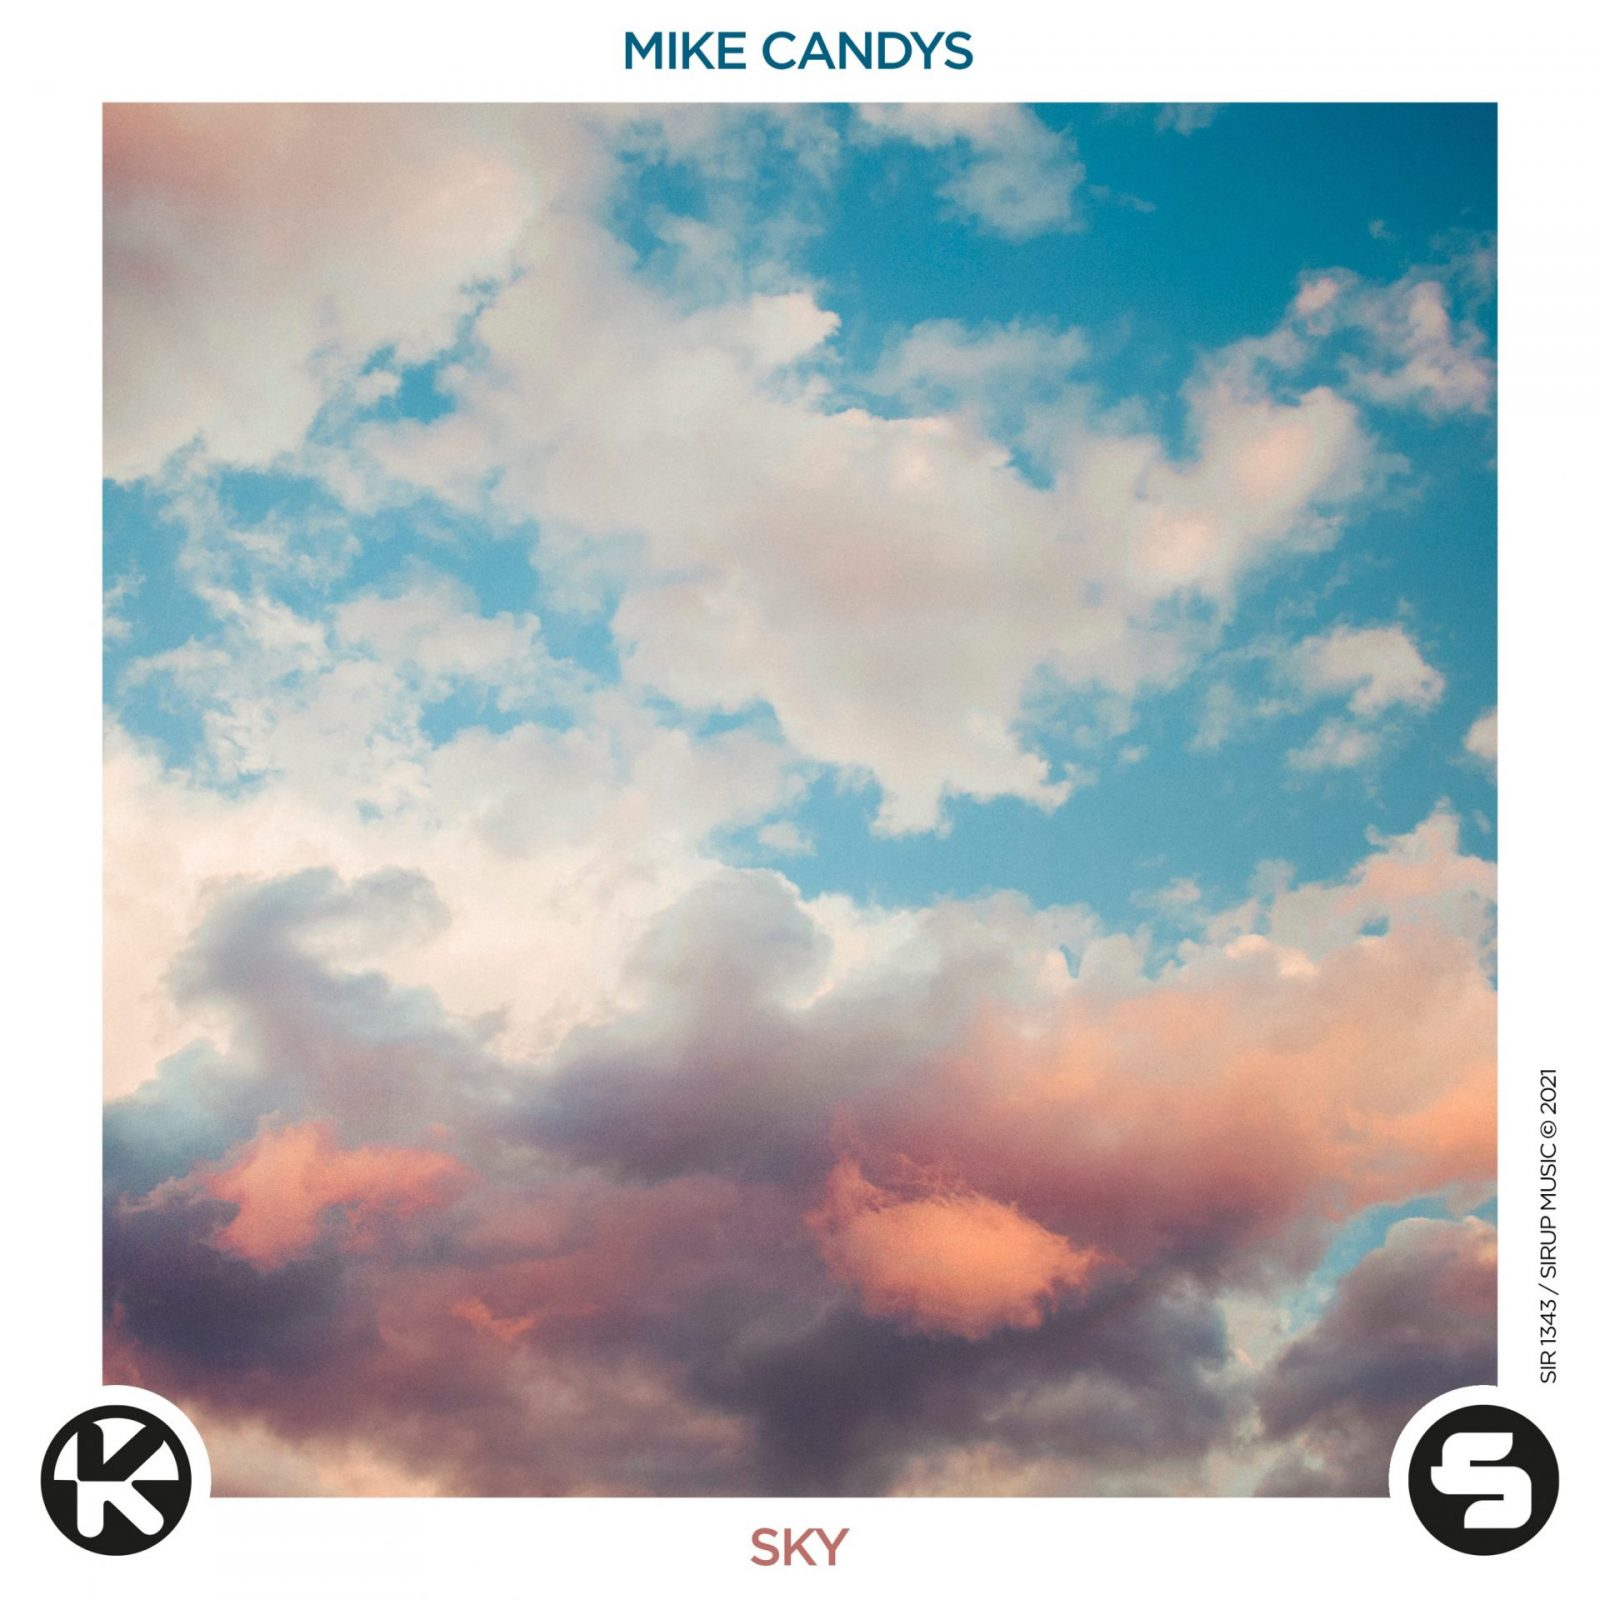 MIKE CANDYS - SKY